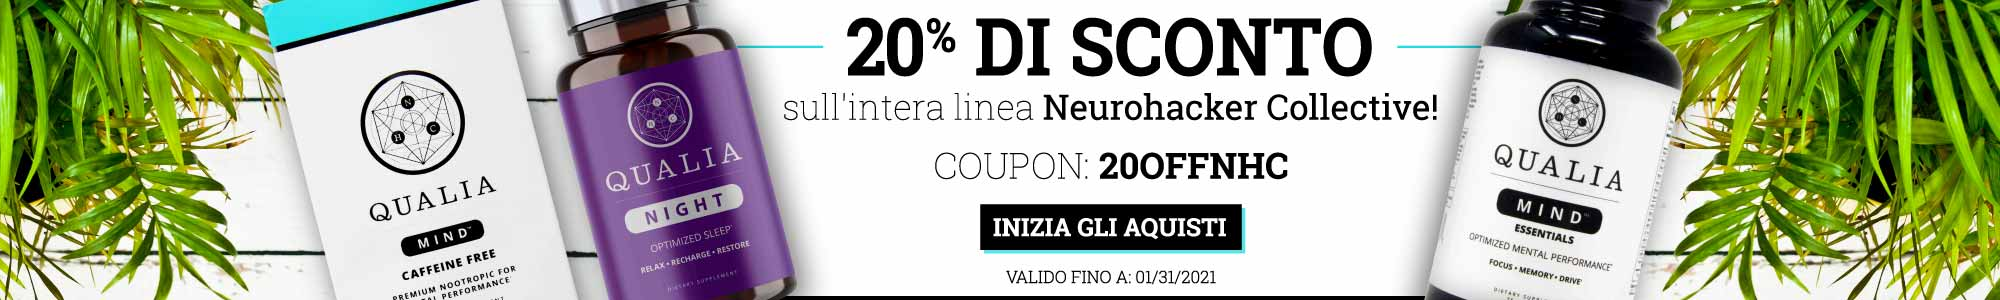 20% off entire Neurohacker Collective line. Use Coupon code: 20offnhc Shop now. Valid until 01/31/2021.